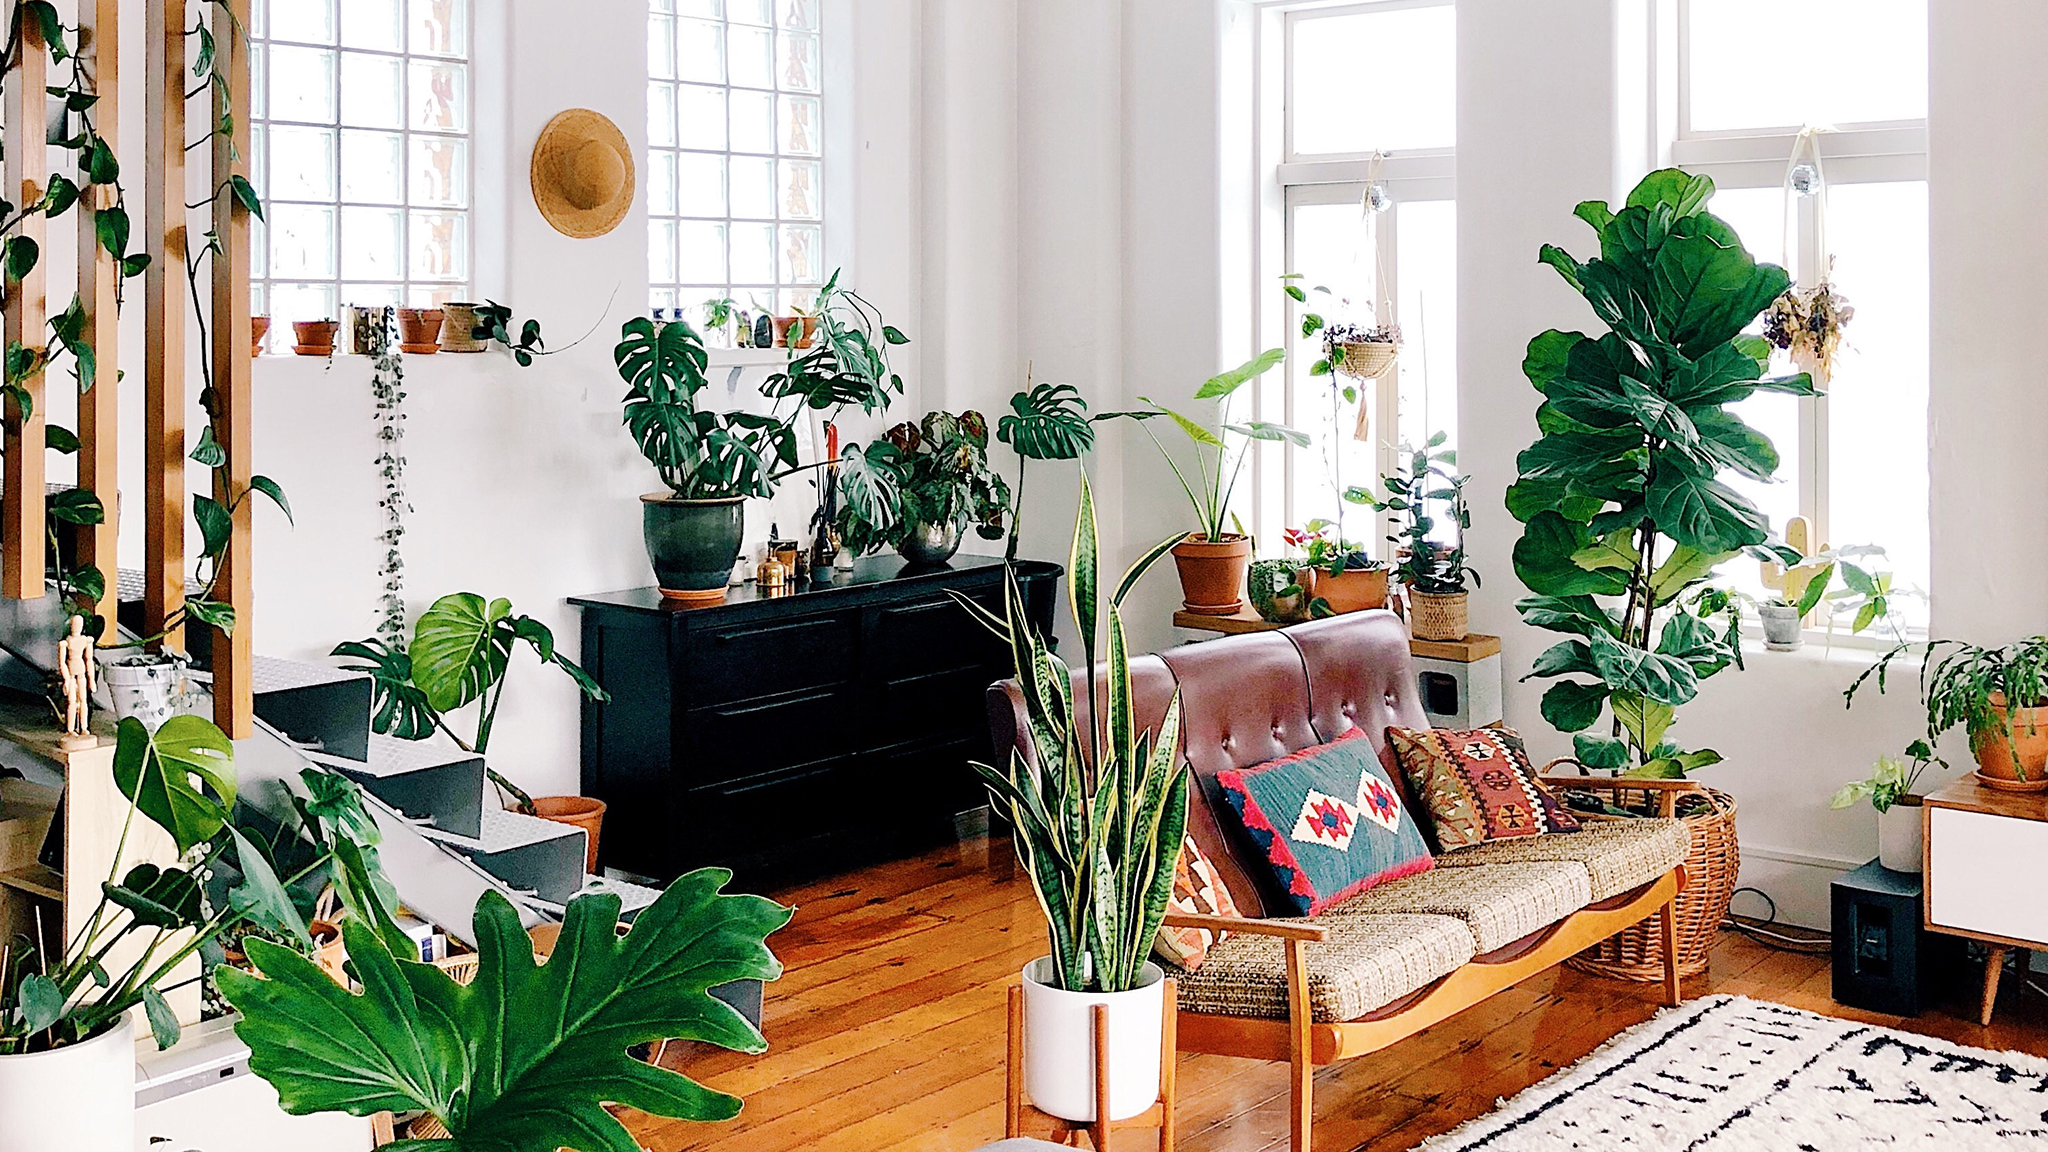 Unusual House Plants For Sale Houseplants Enjoy A Growth Spurt In Popularity Financial Times